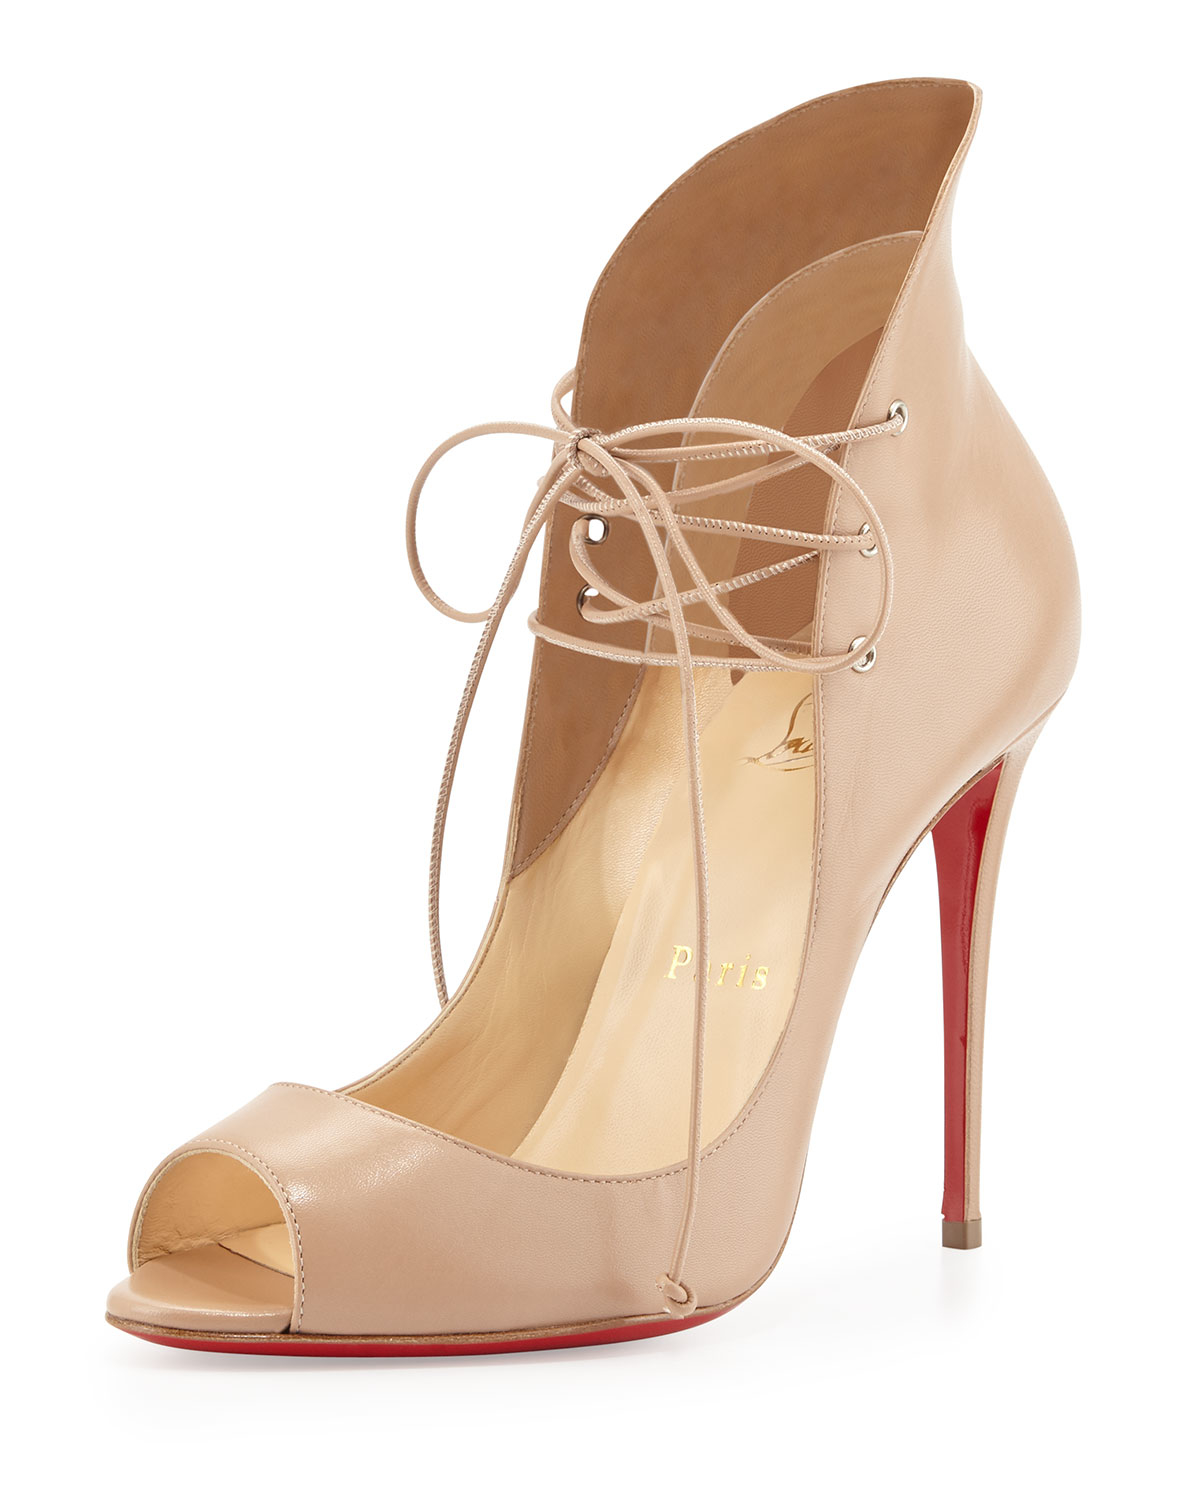 spooky shoes price - Christian louboutin Mega Vamp Lace-up Red Sole Pump in Pink (NUDE ...